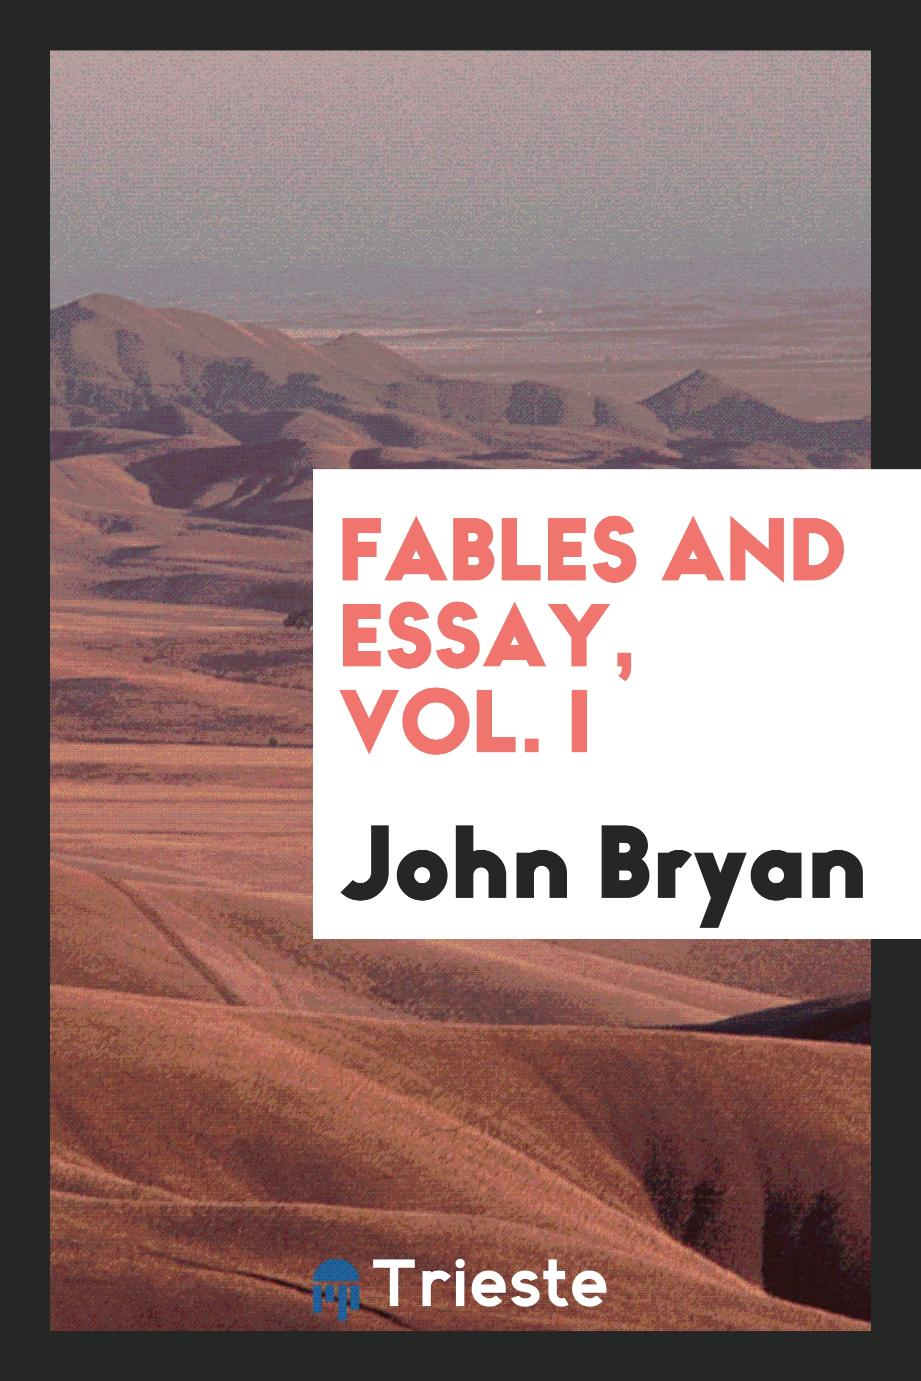 Fables and essay, vol. I